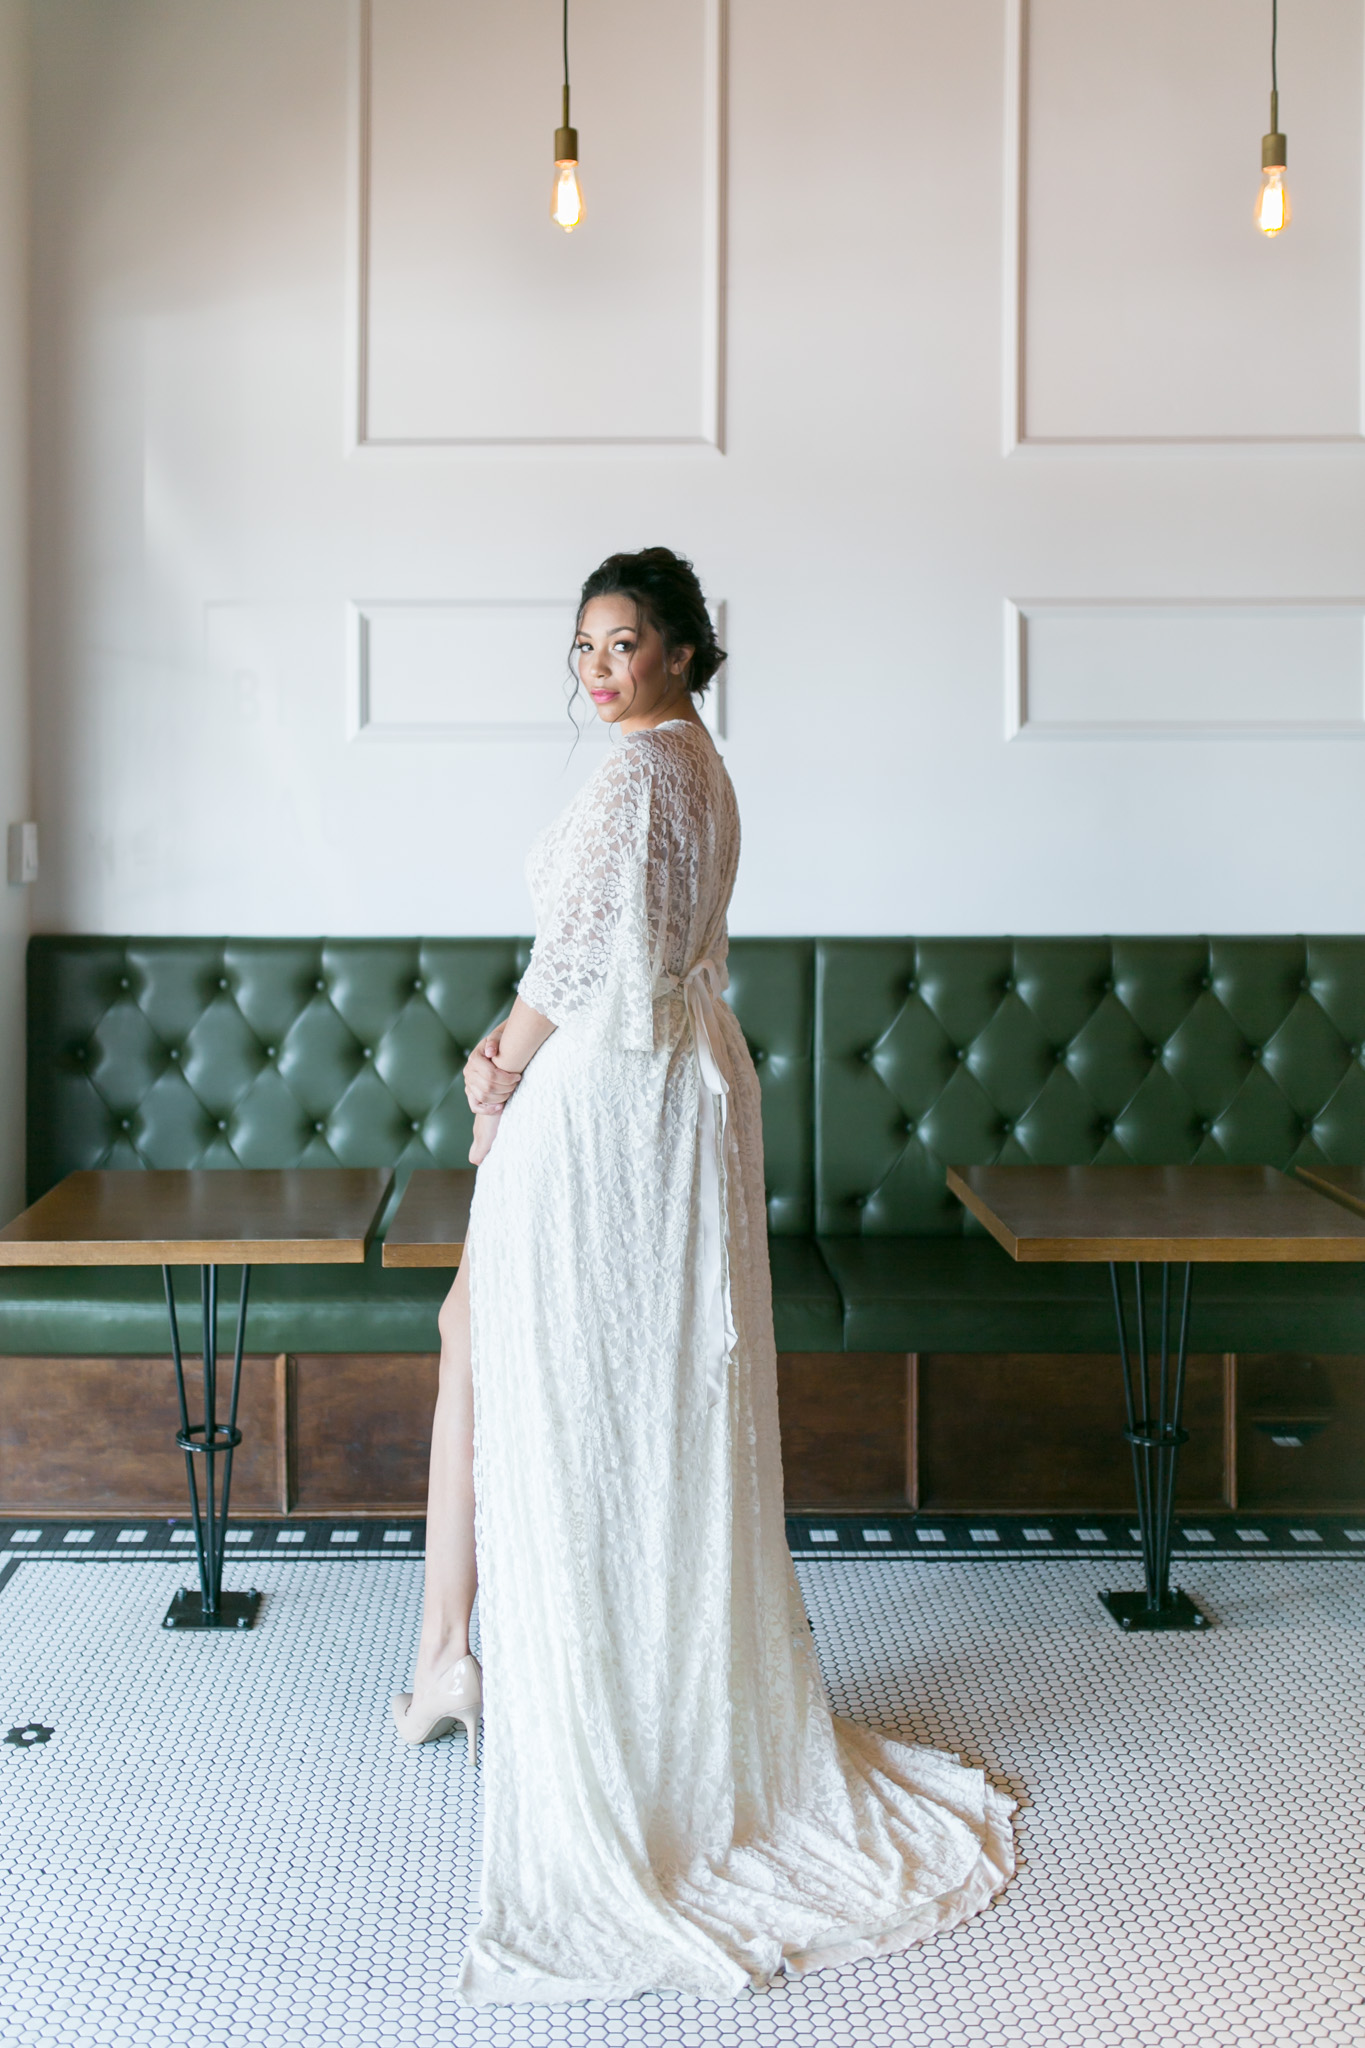 Michelle Chang Photography - Wedding/Bridal Inspiration